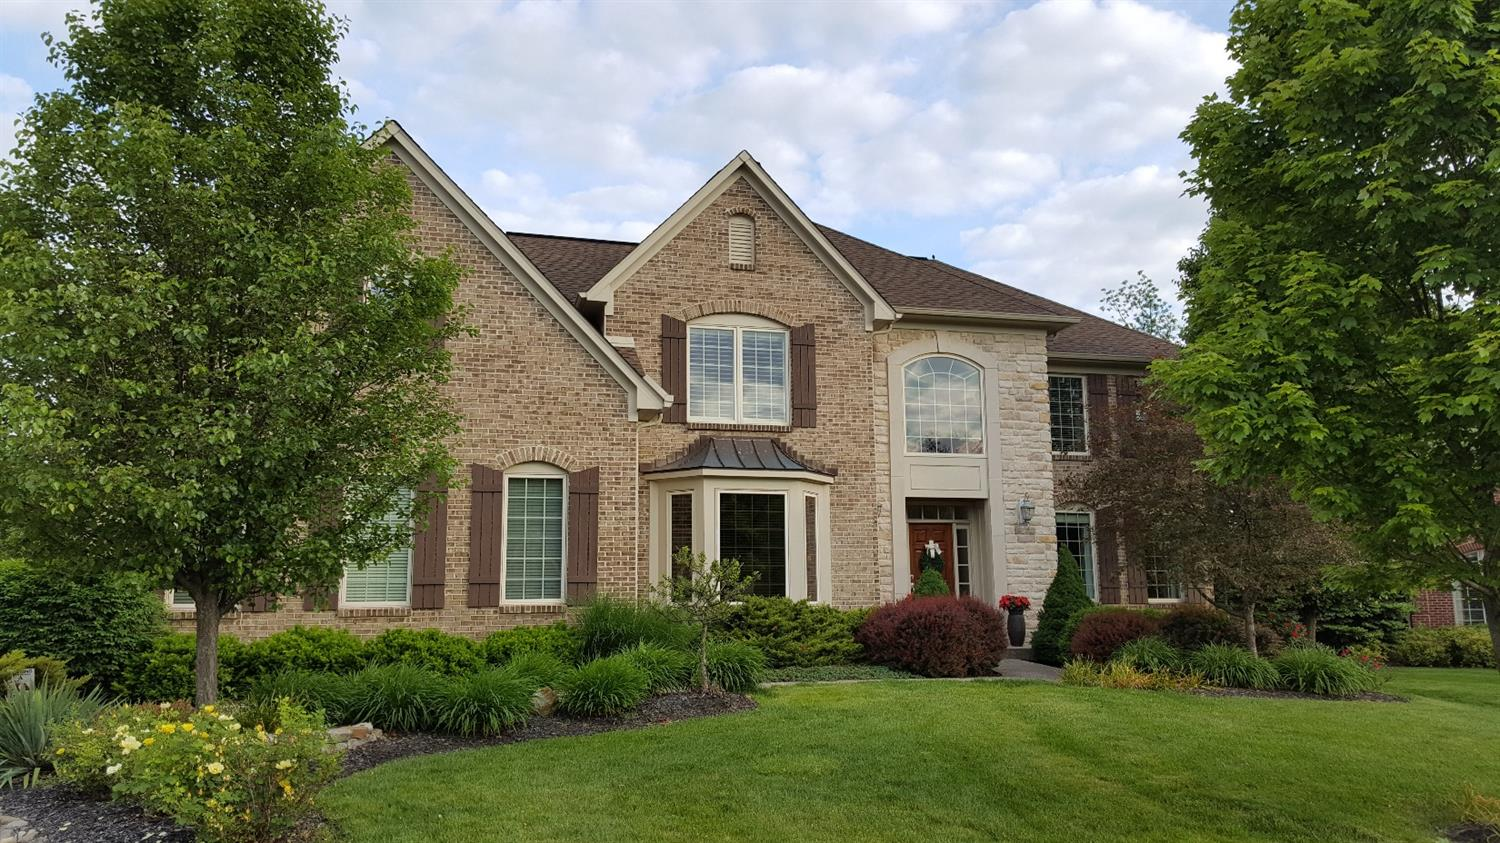 6719 Sandy Shores Drive, Miami Twp, OH 45140